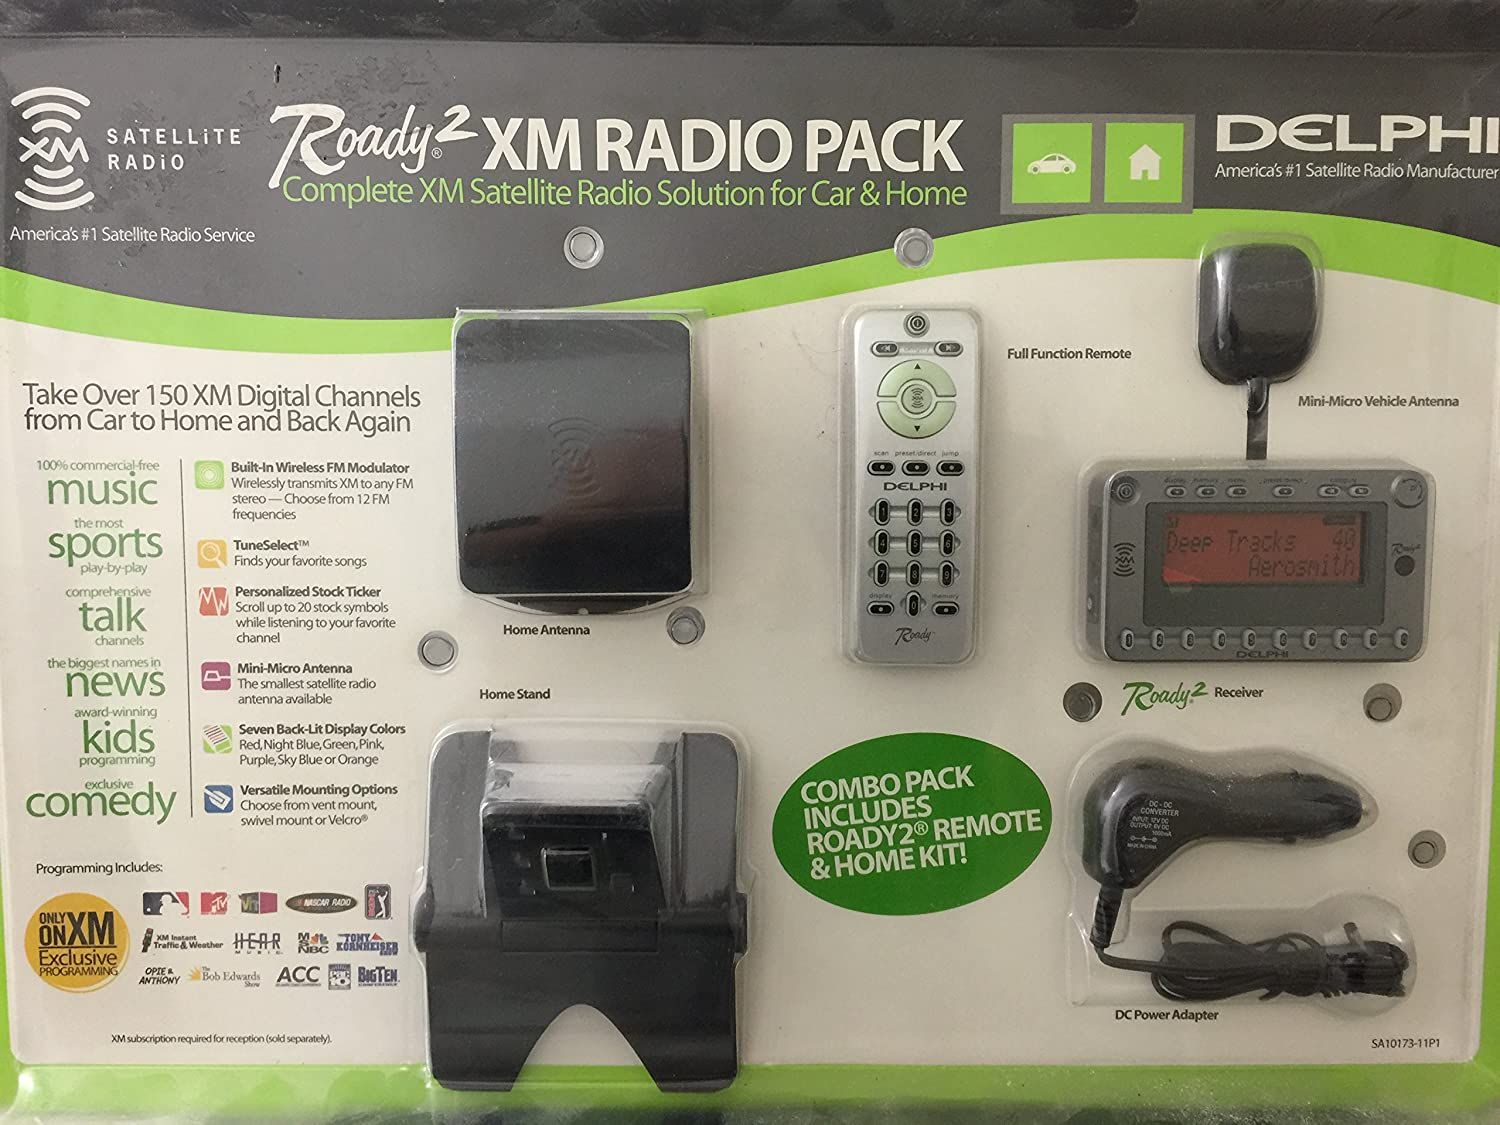 Delphi SA10315-11B1 XpressRC Plug and Play XM Satellite Radio with Color Display